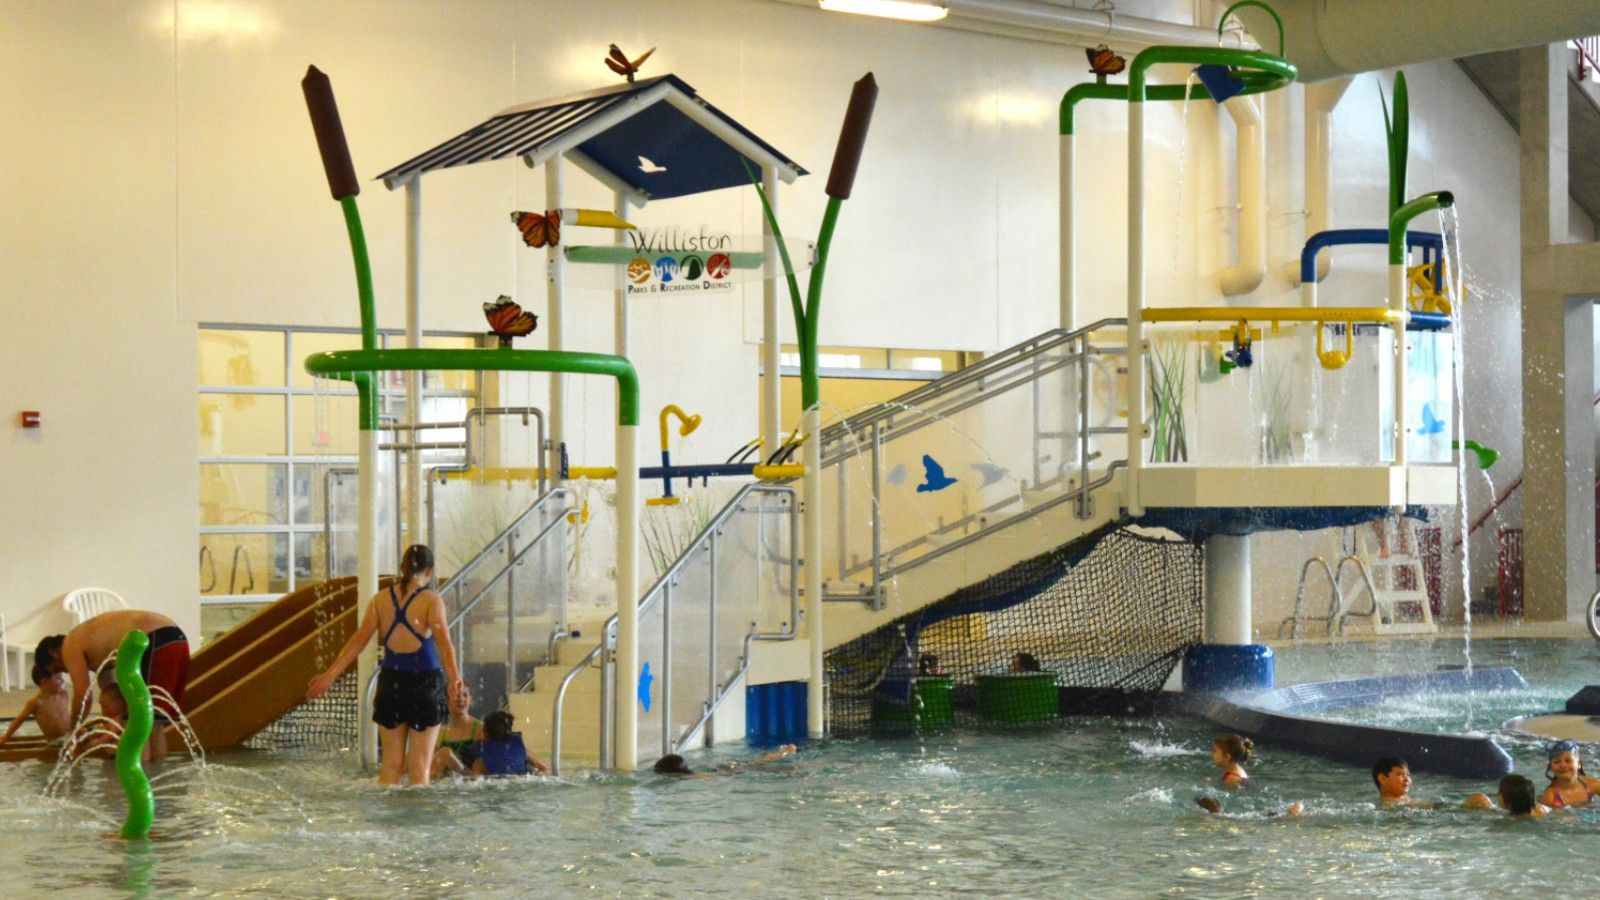 Williston Area Recreation Center - Waterpark